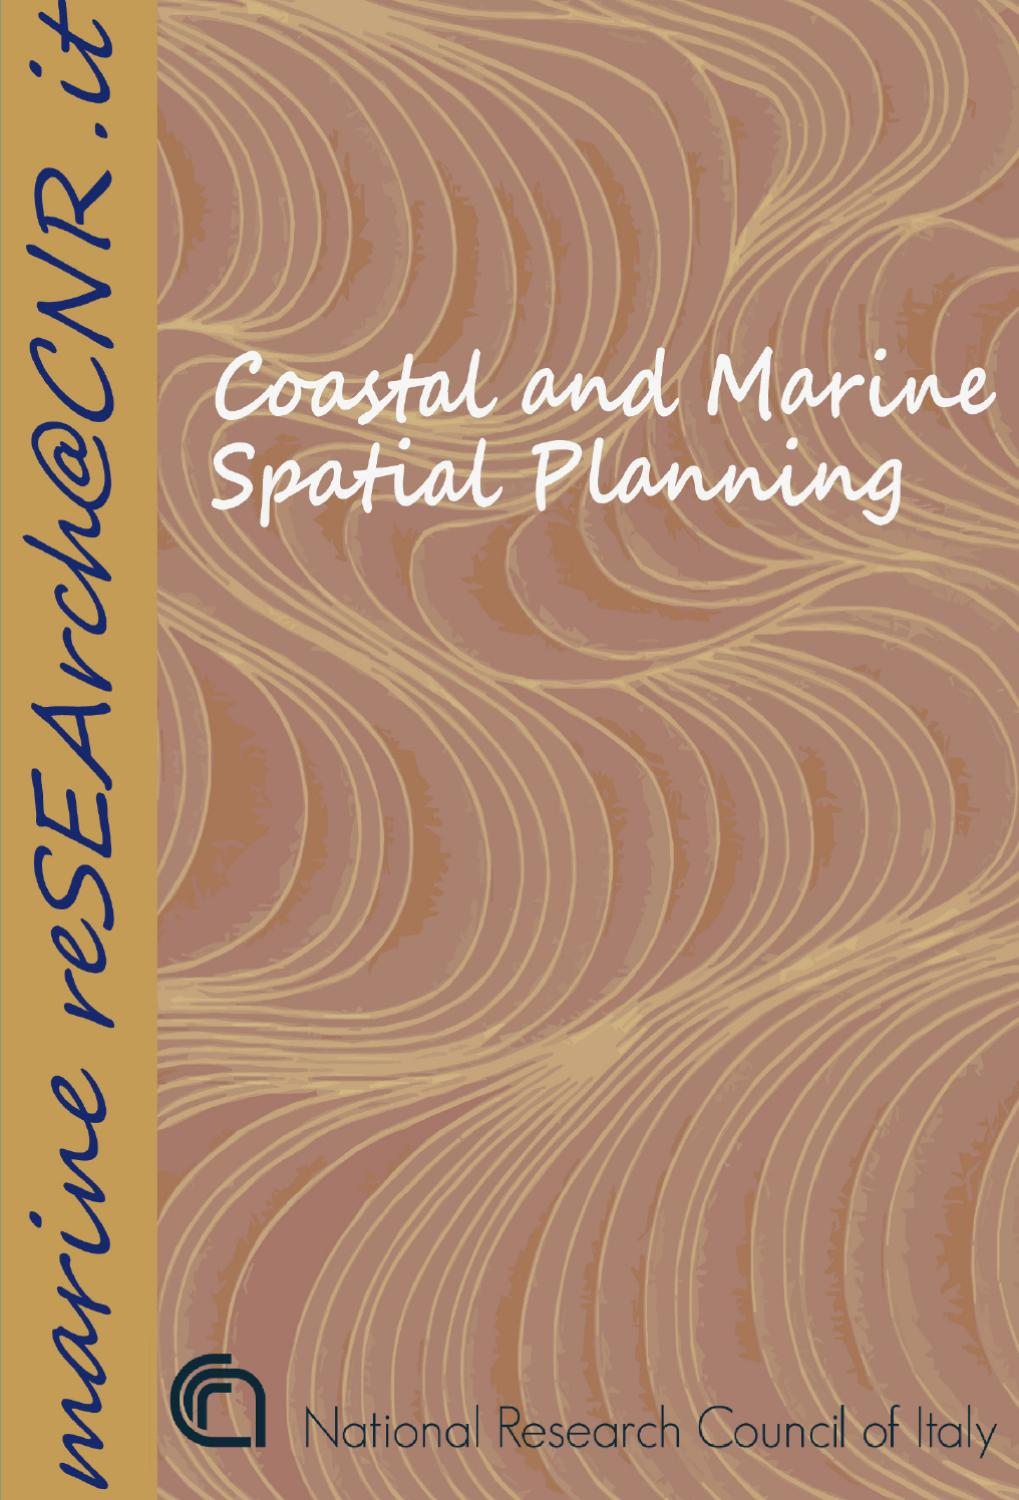 Coastal and Marine Spatial Planning by CNR - Dipartimento